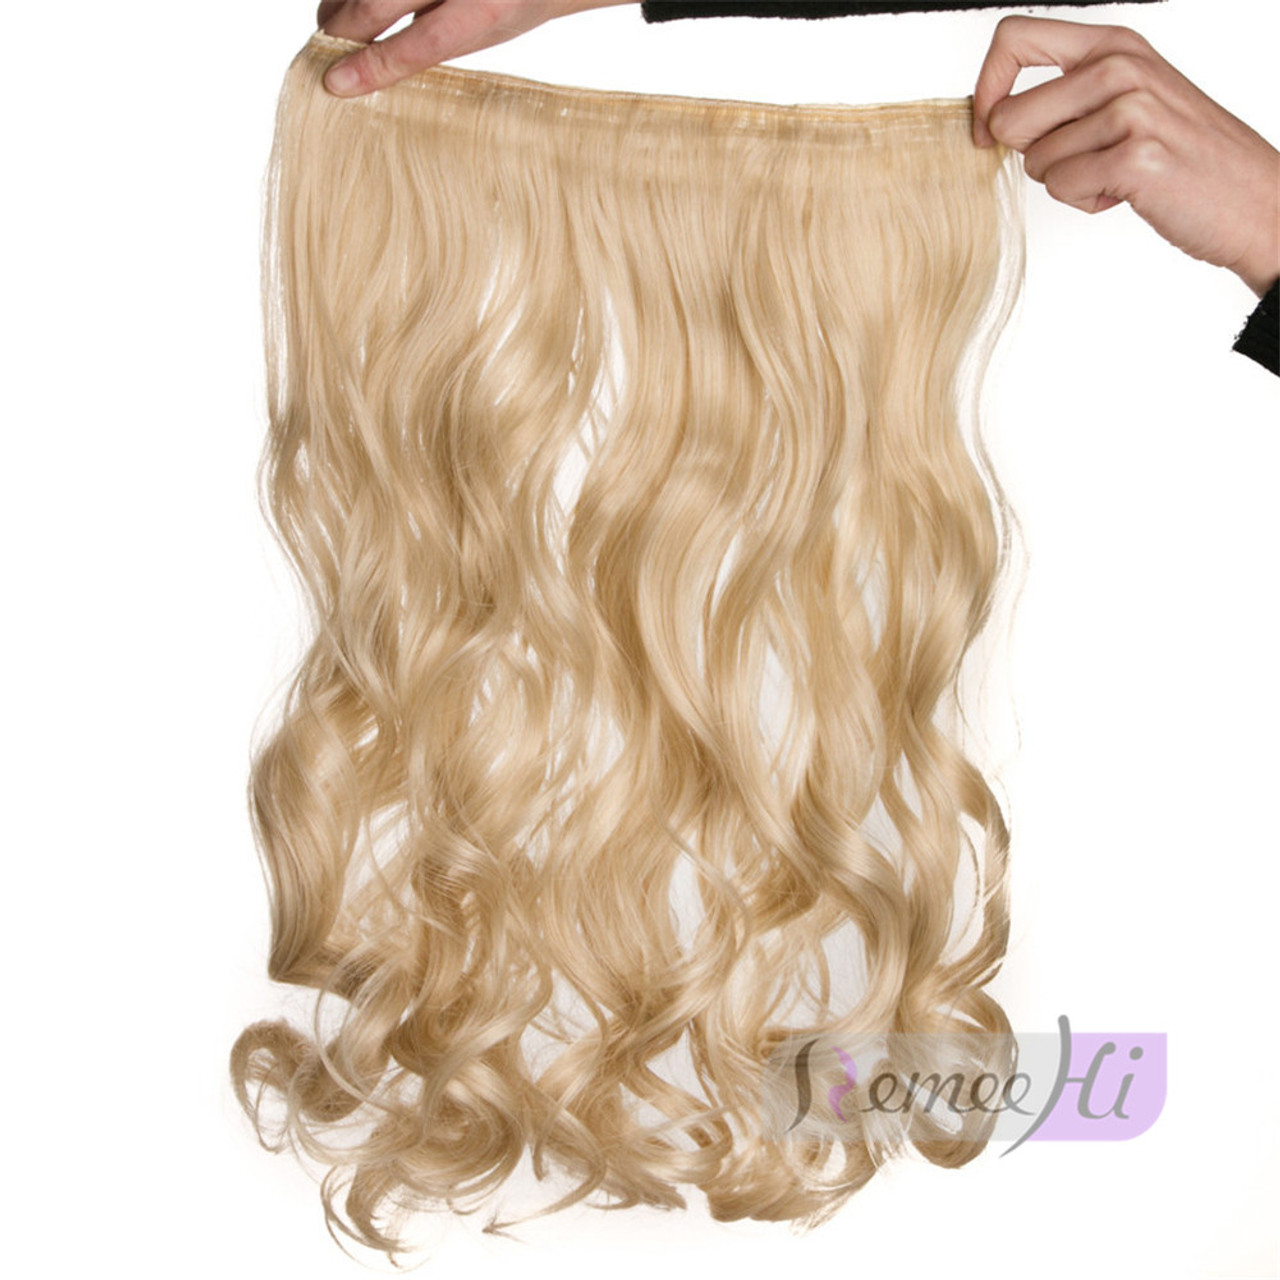 Remeehi Wave One Piece 25cm 120g Straight Clip In Hair Extension For